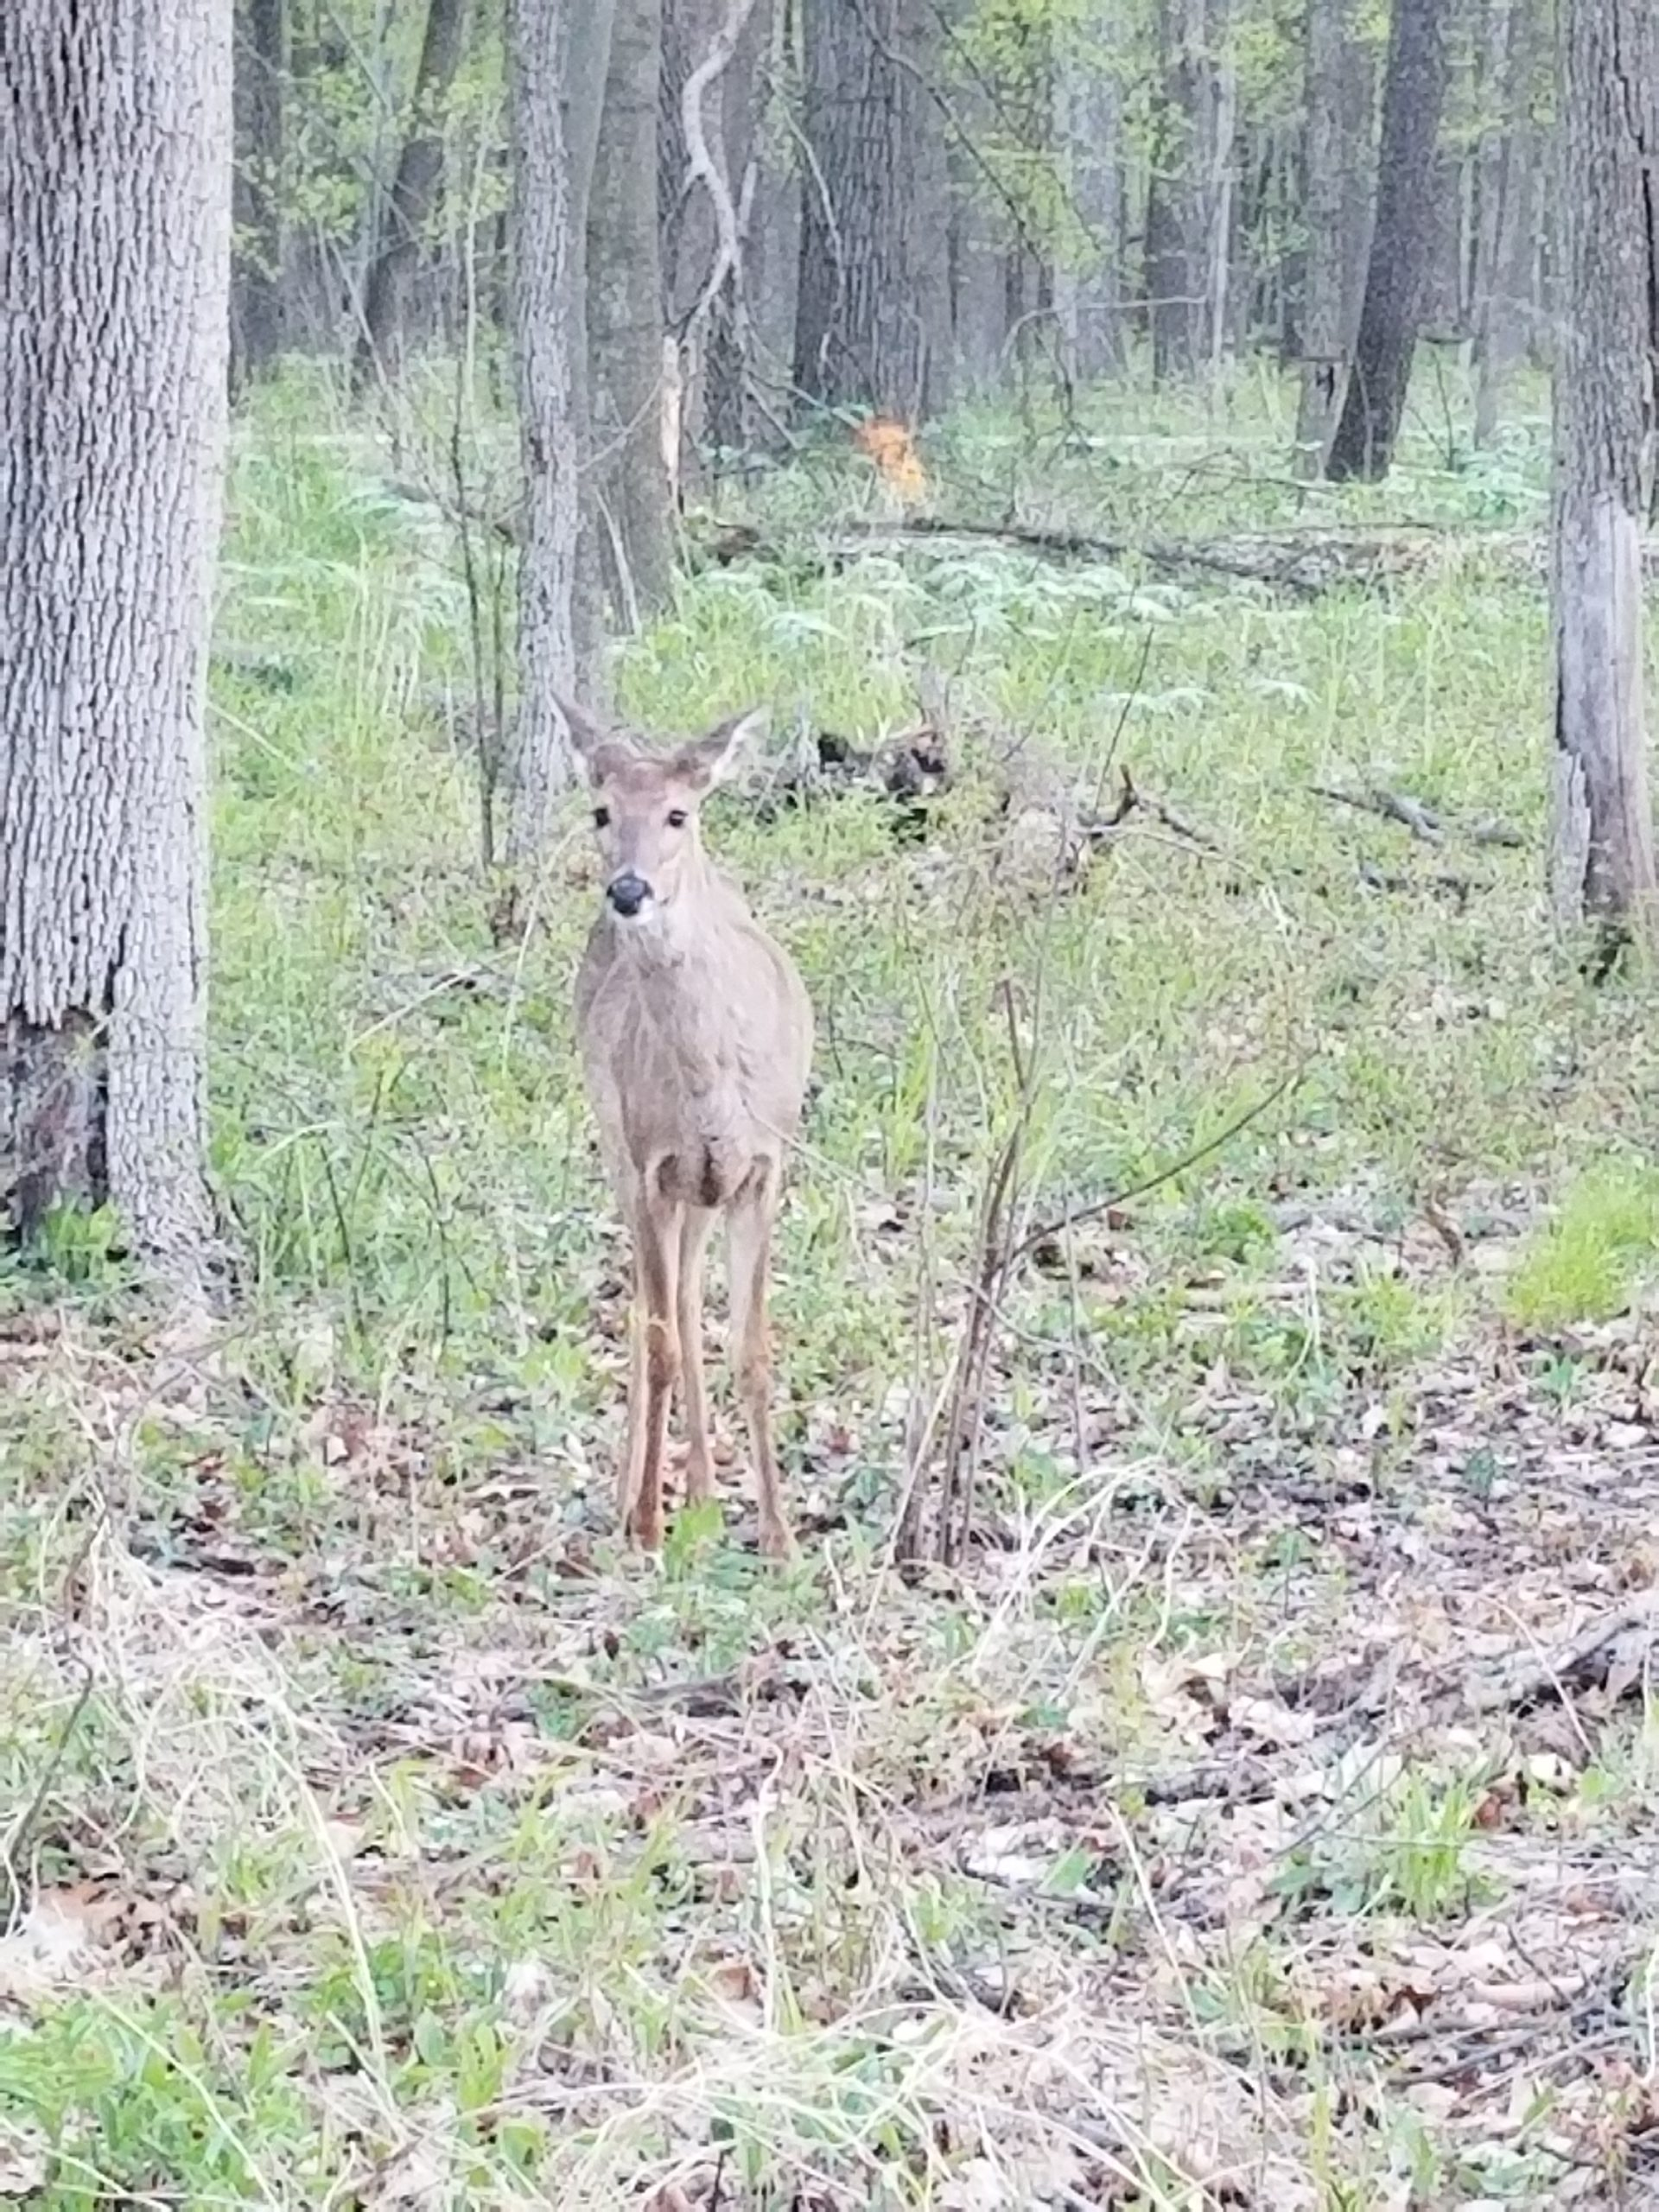 This little doe was spotted in the woods on Pine Street. nature, wildlife, animal, mammal, deer, woods, tree, landscape Photo: Lori Limberg